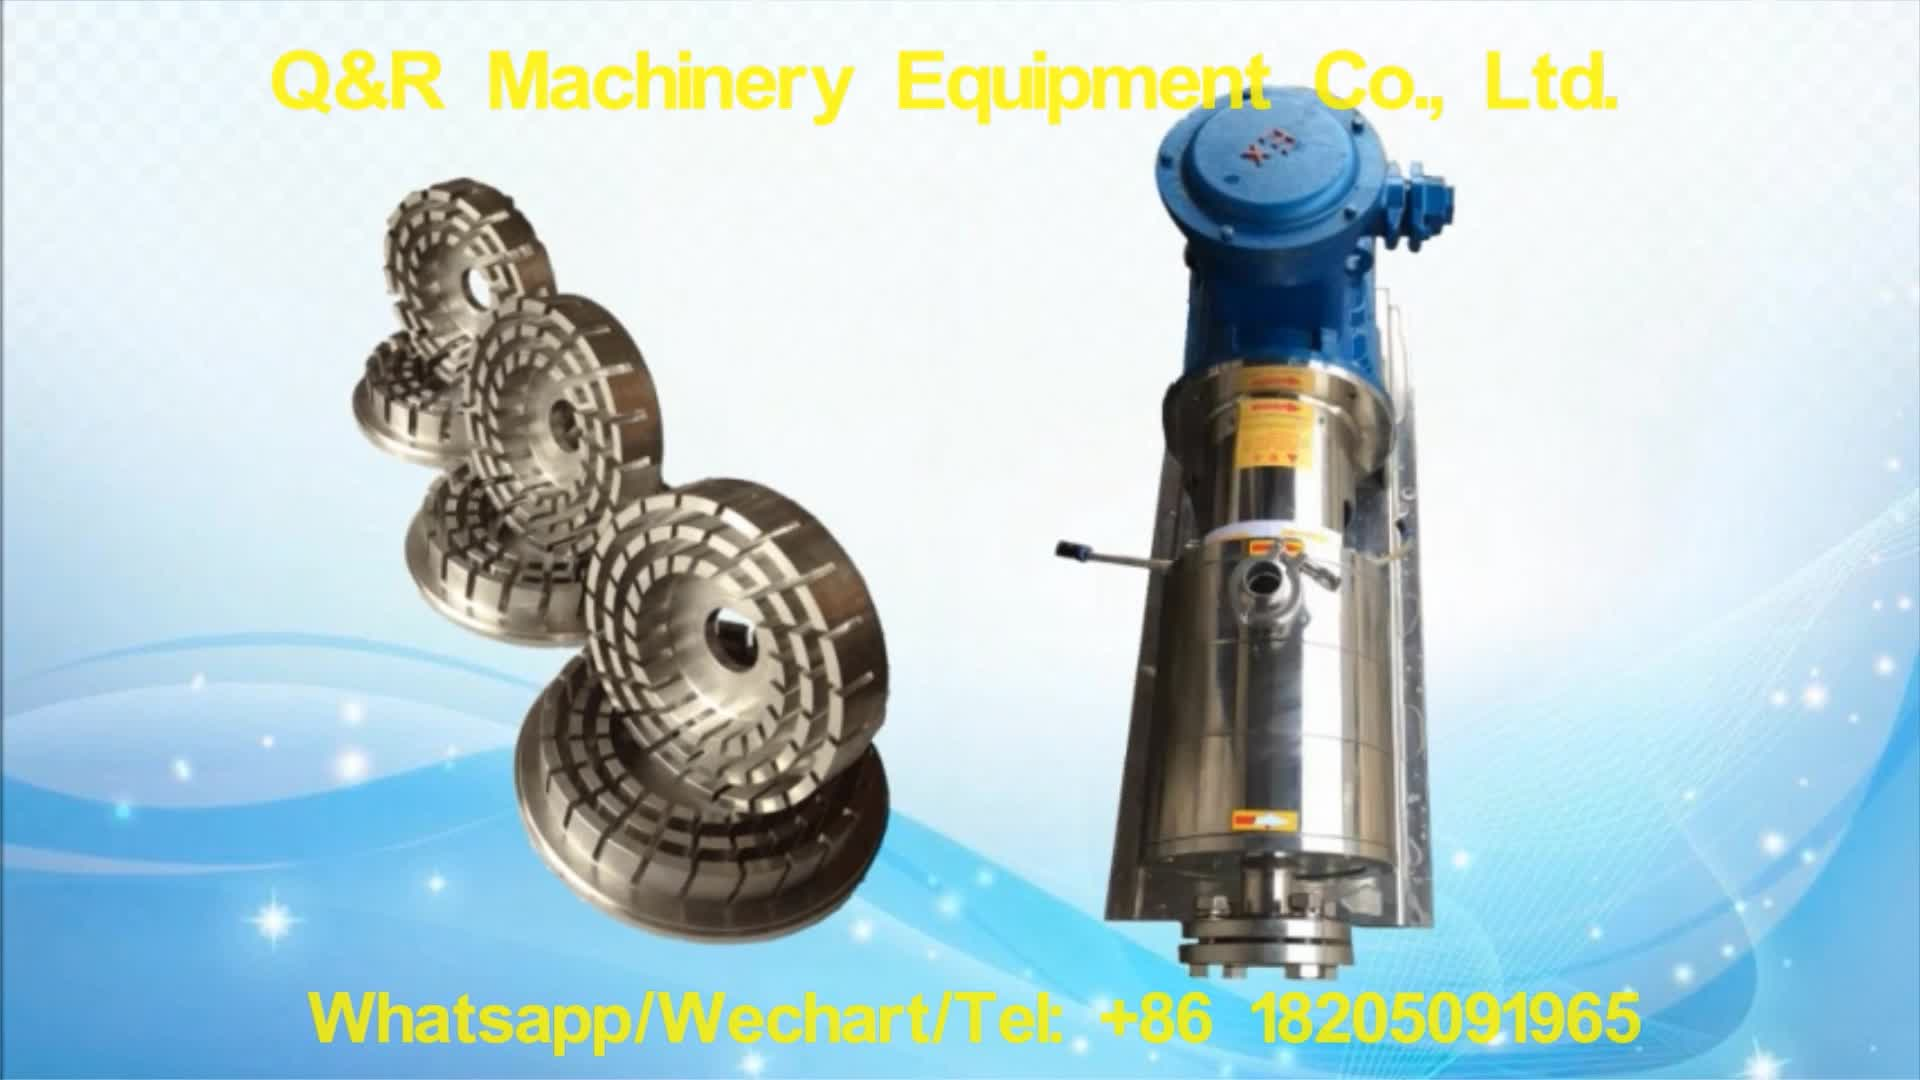 Food High-performance high shear in line water and powder mix emulsifier pump with hopper